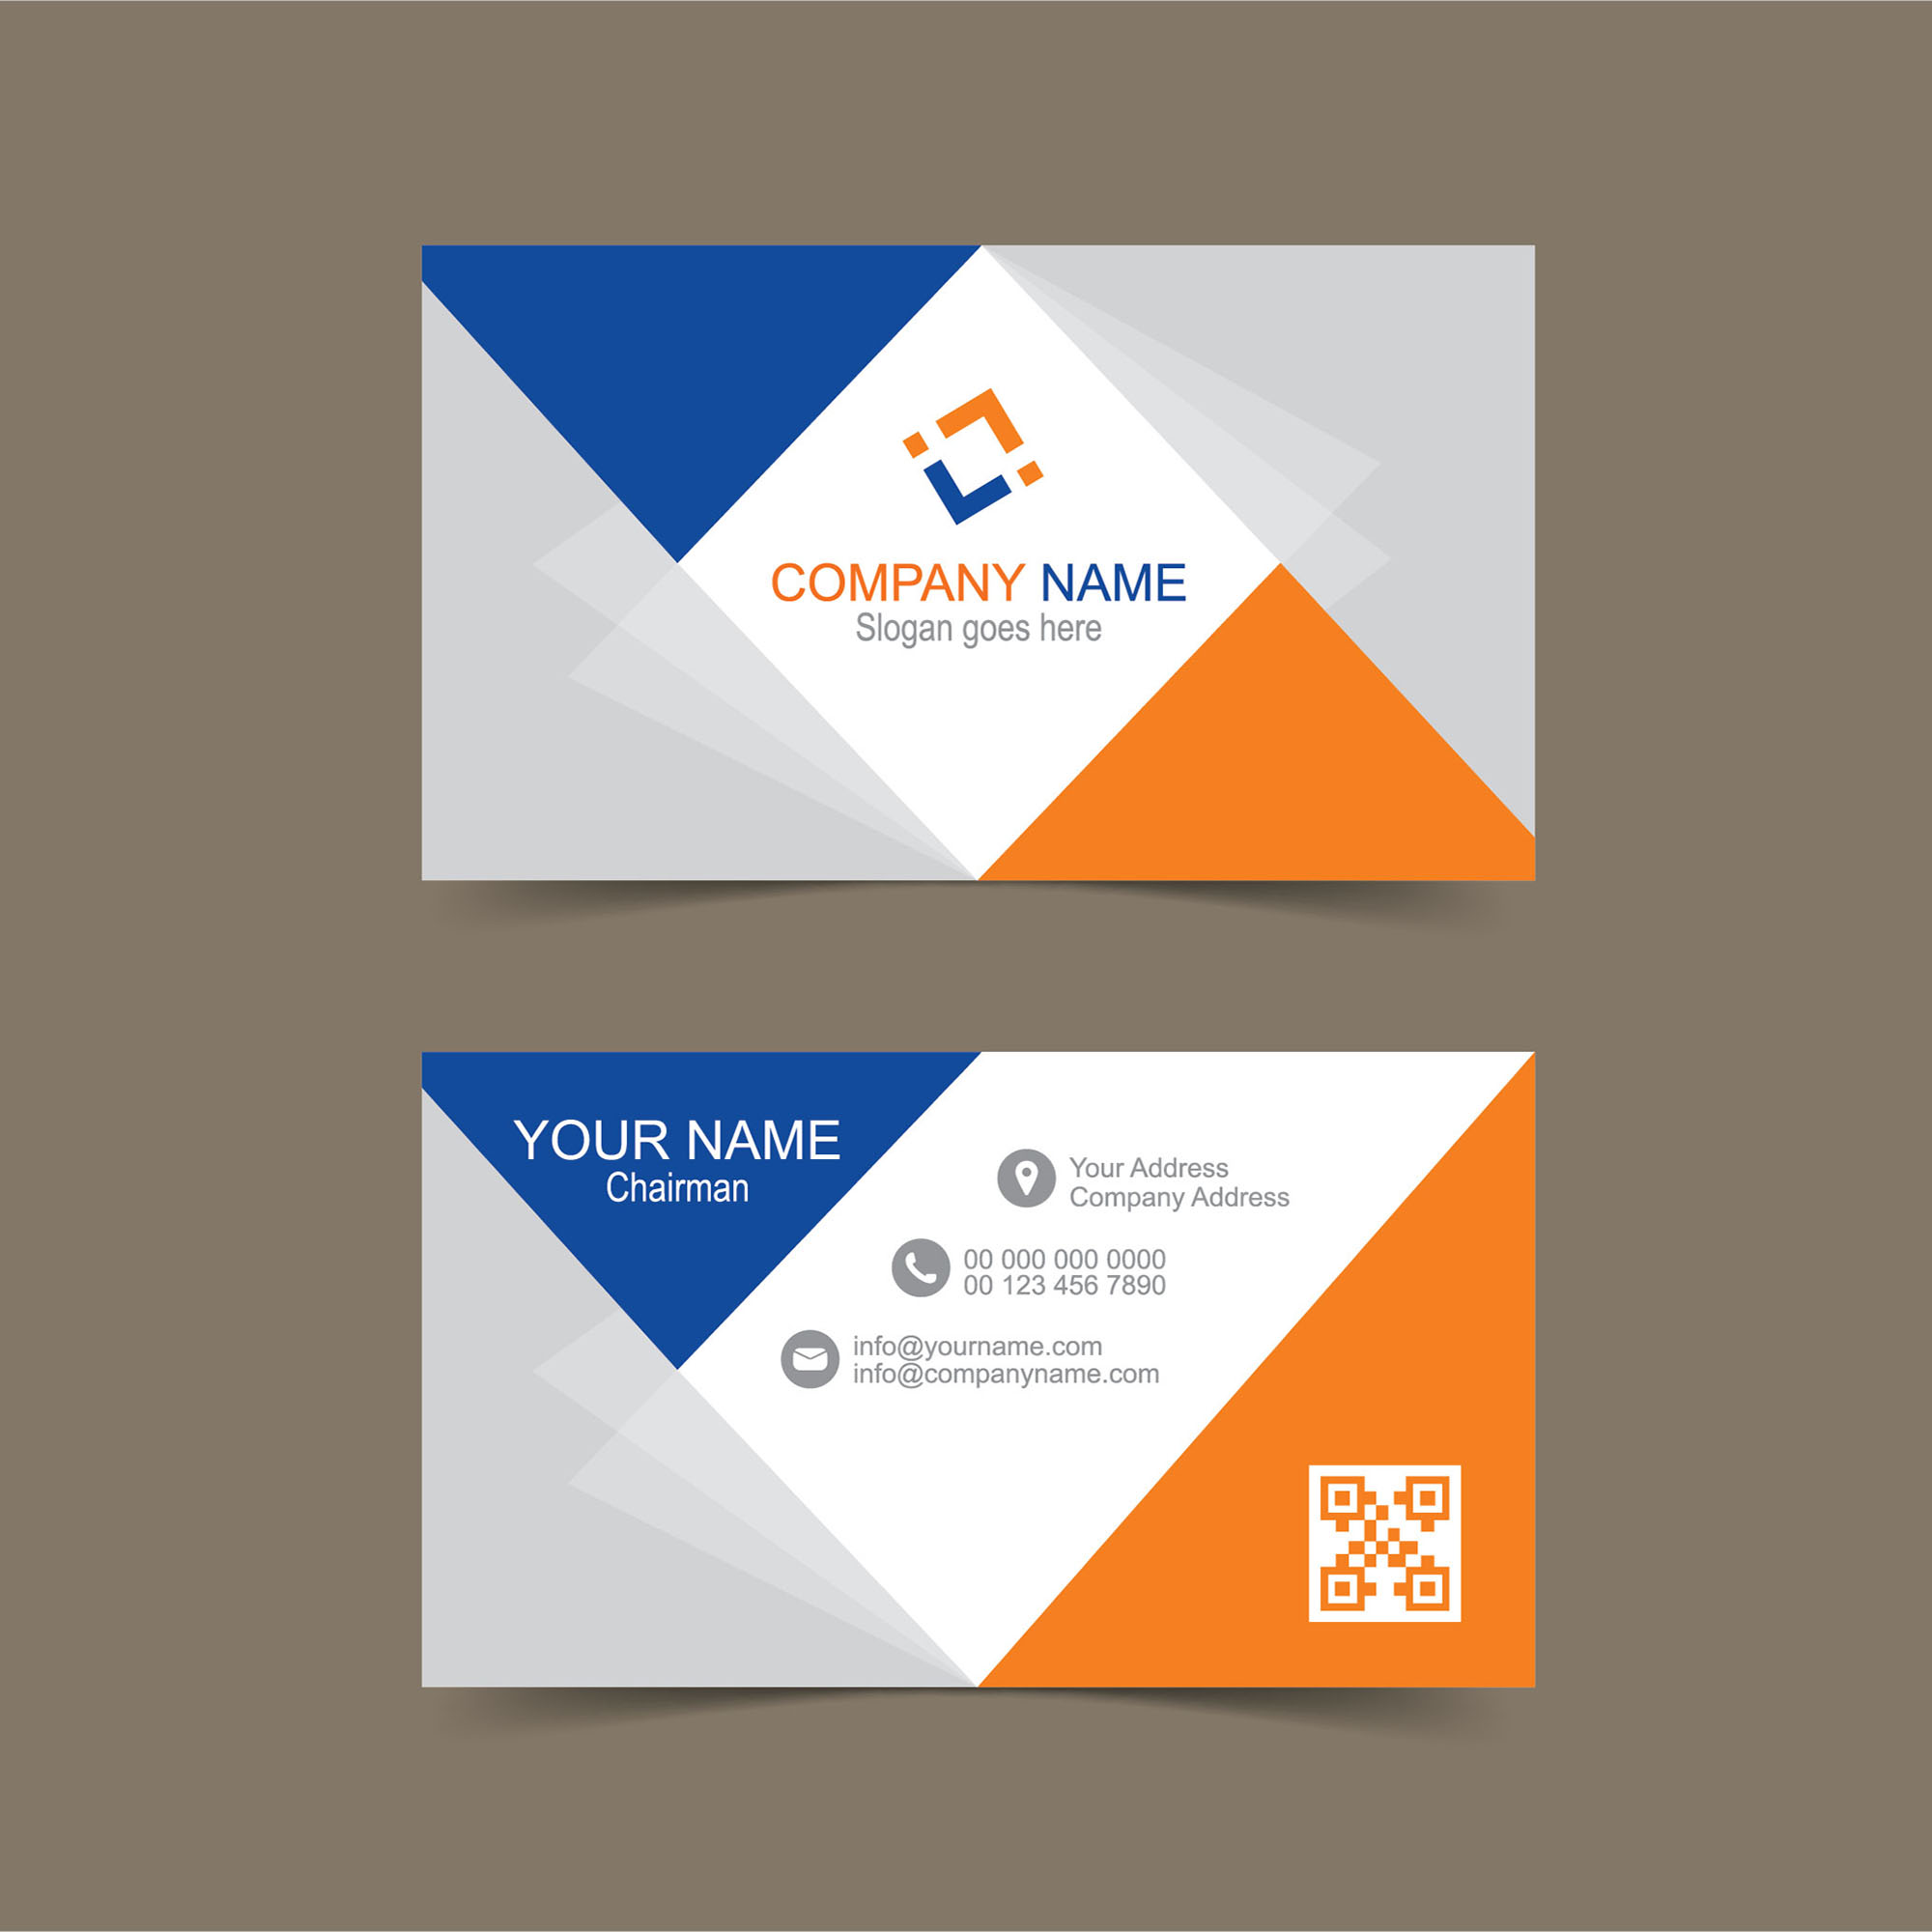 Free business card template for illustrator wisxi business card business cards business card design business card template design templates alramifo Image collections